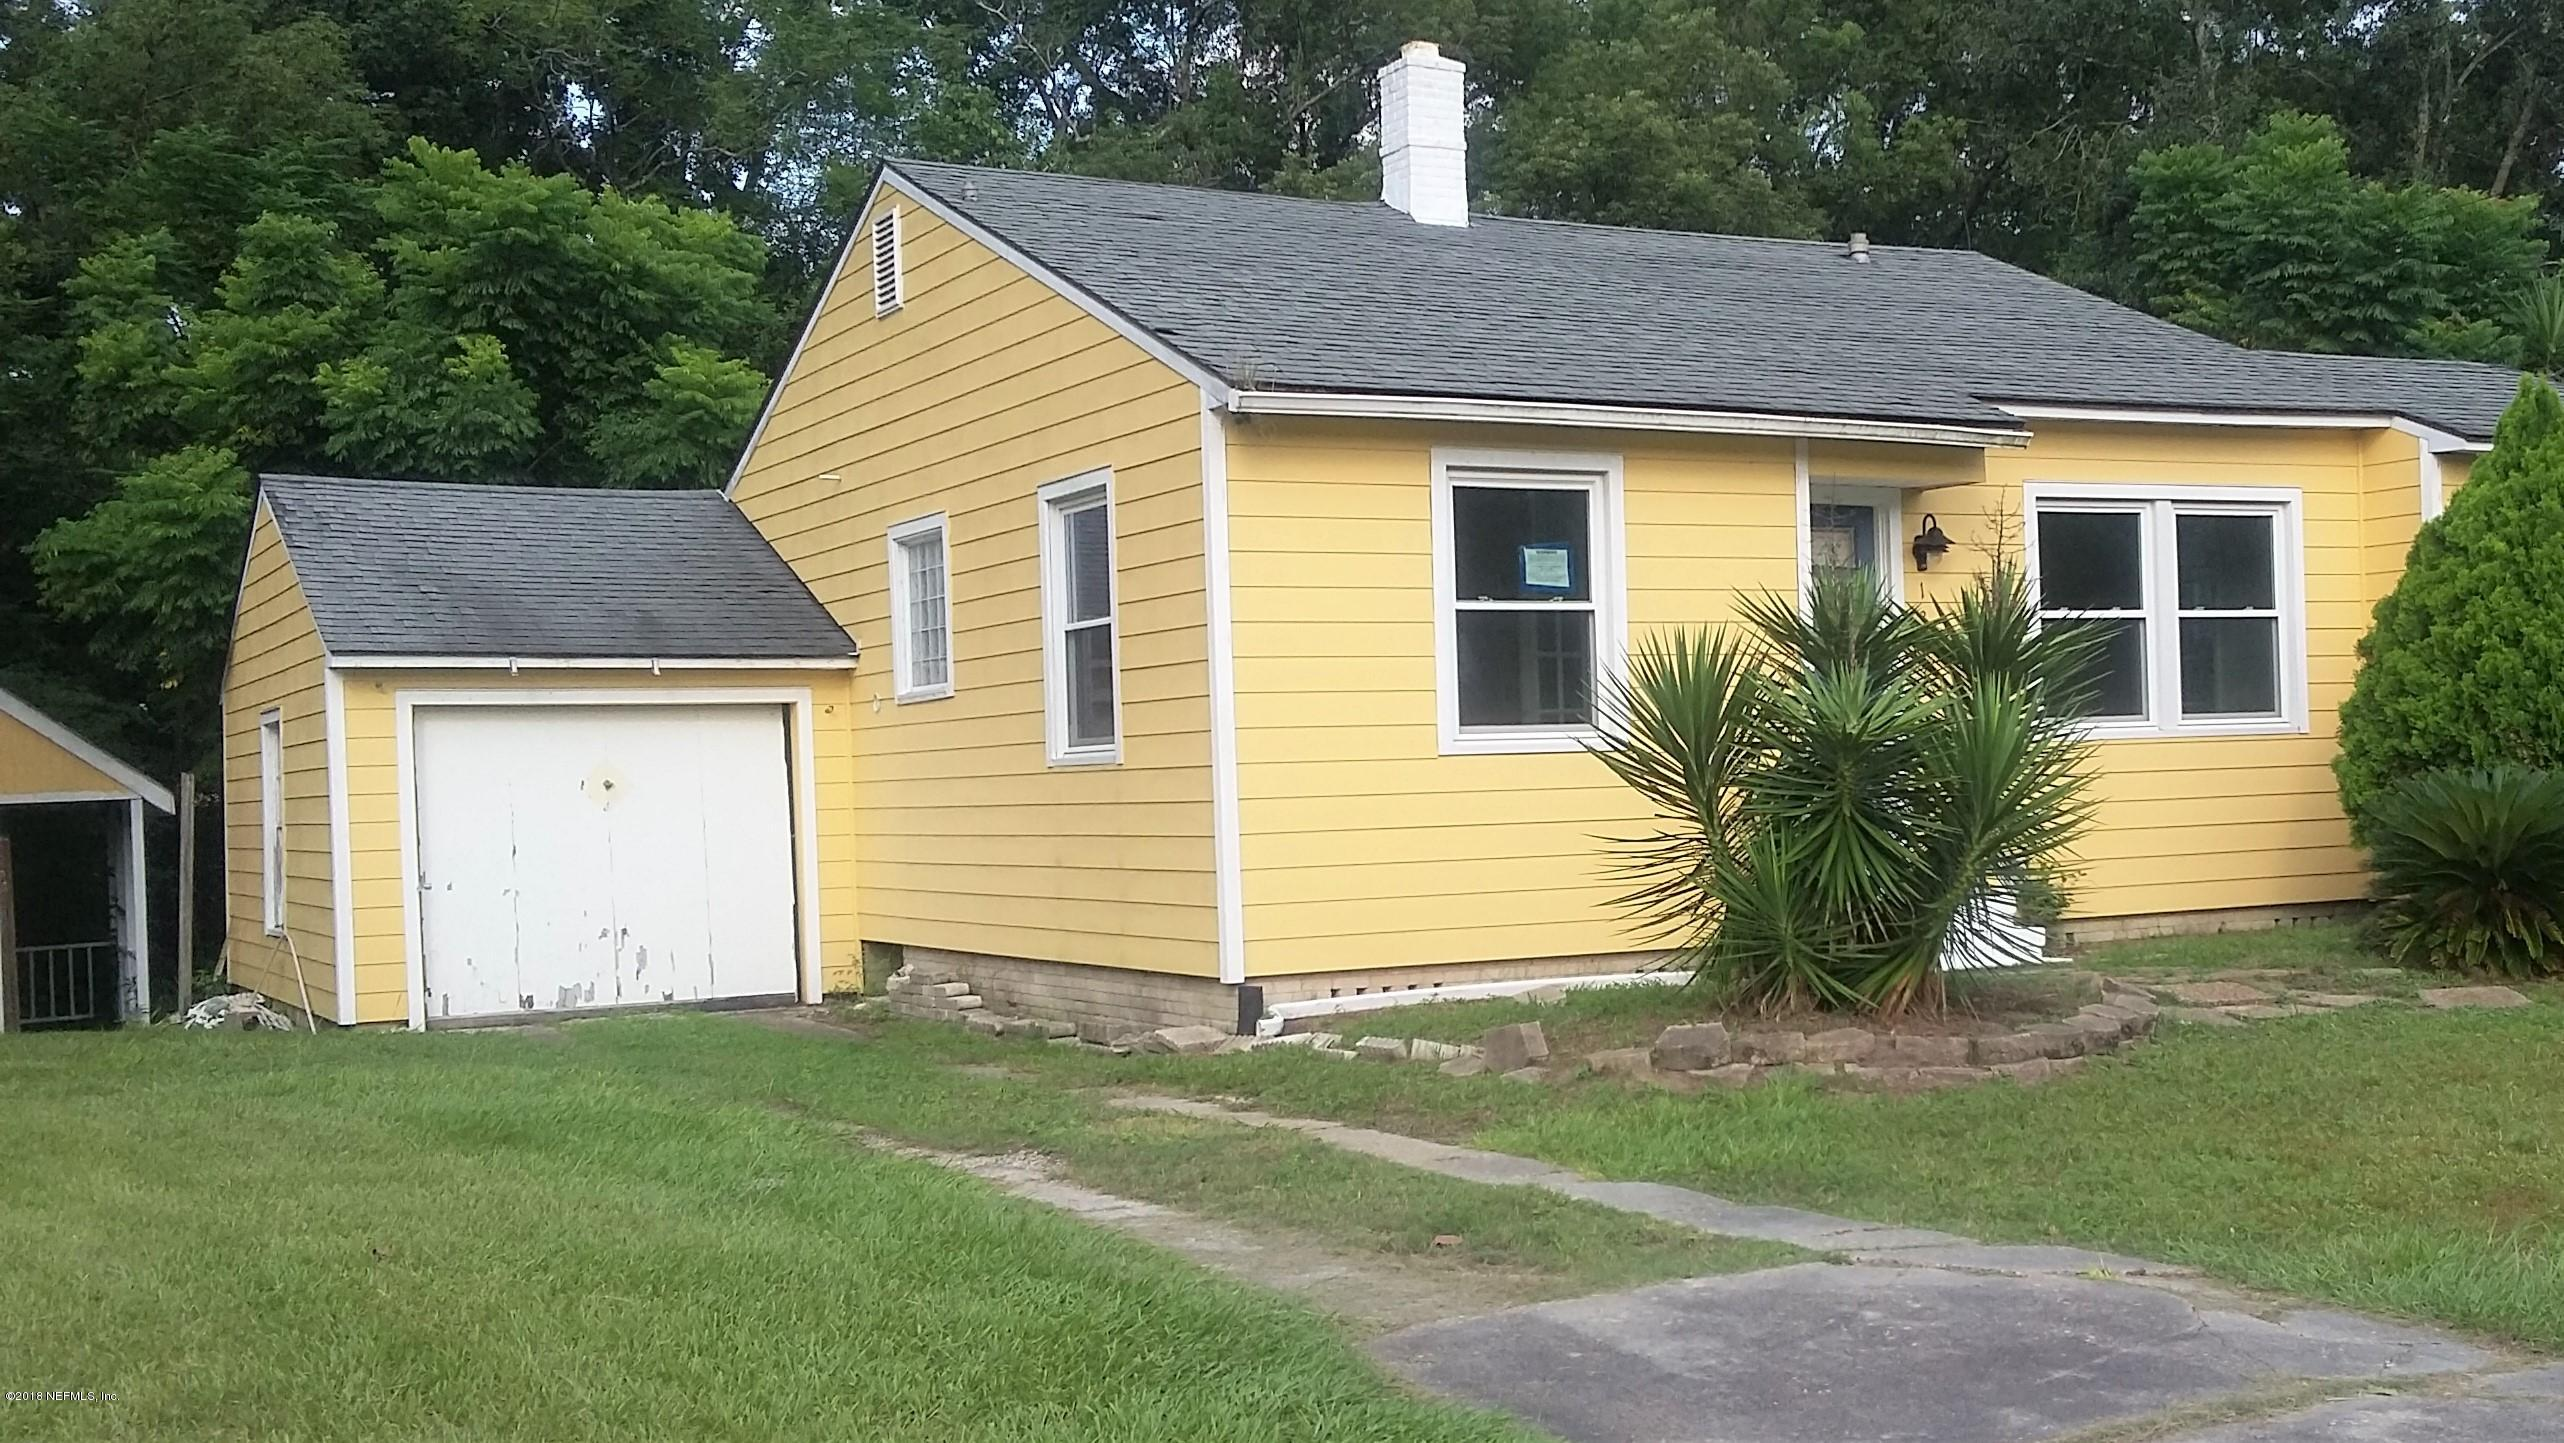 1321 PINEGROVE, JACKSONVILLE, FLORIDA 32205, 3 Bedrooms Bedrooms, ,2 BathroomsBathrooms,Residential - single family,For sale,PINEGROVE,954233